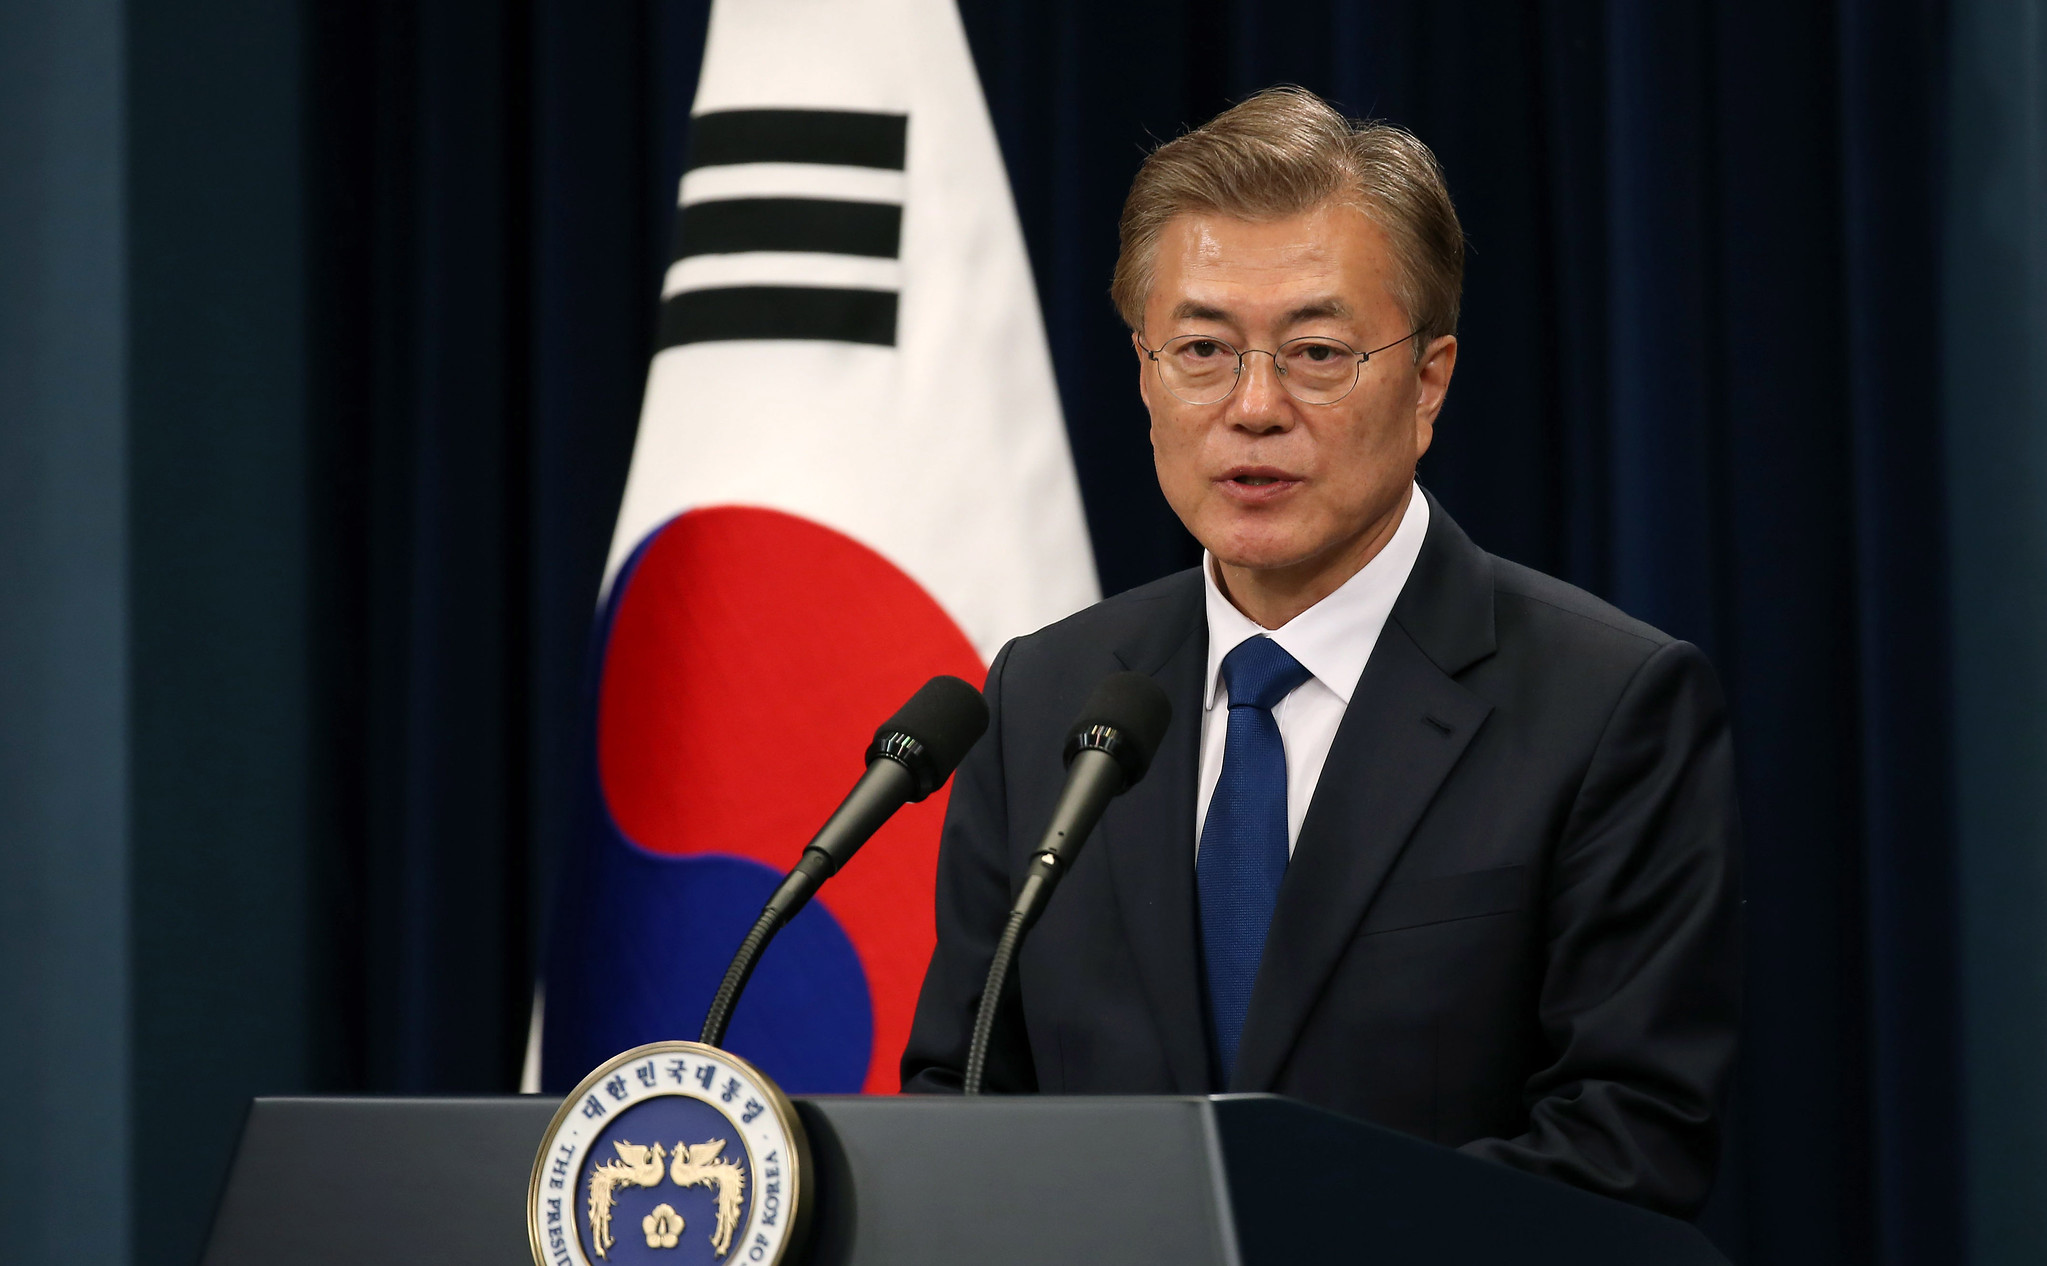 Moon Jae-in (Photo : Flickr/Creative Commons)